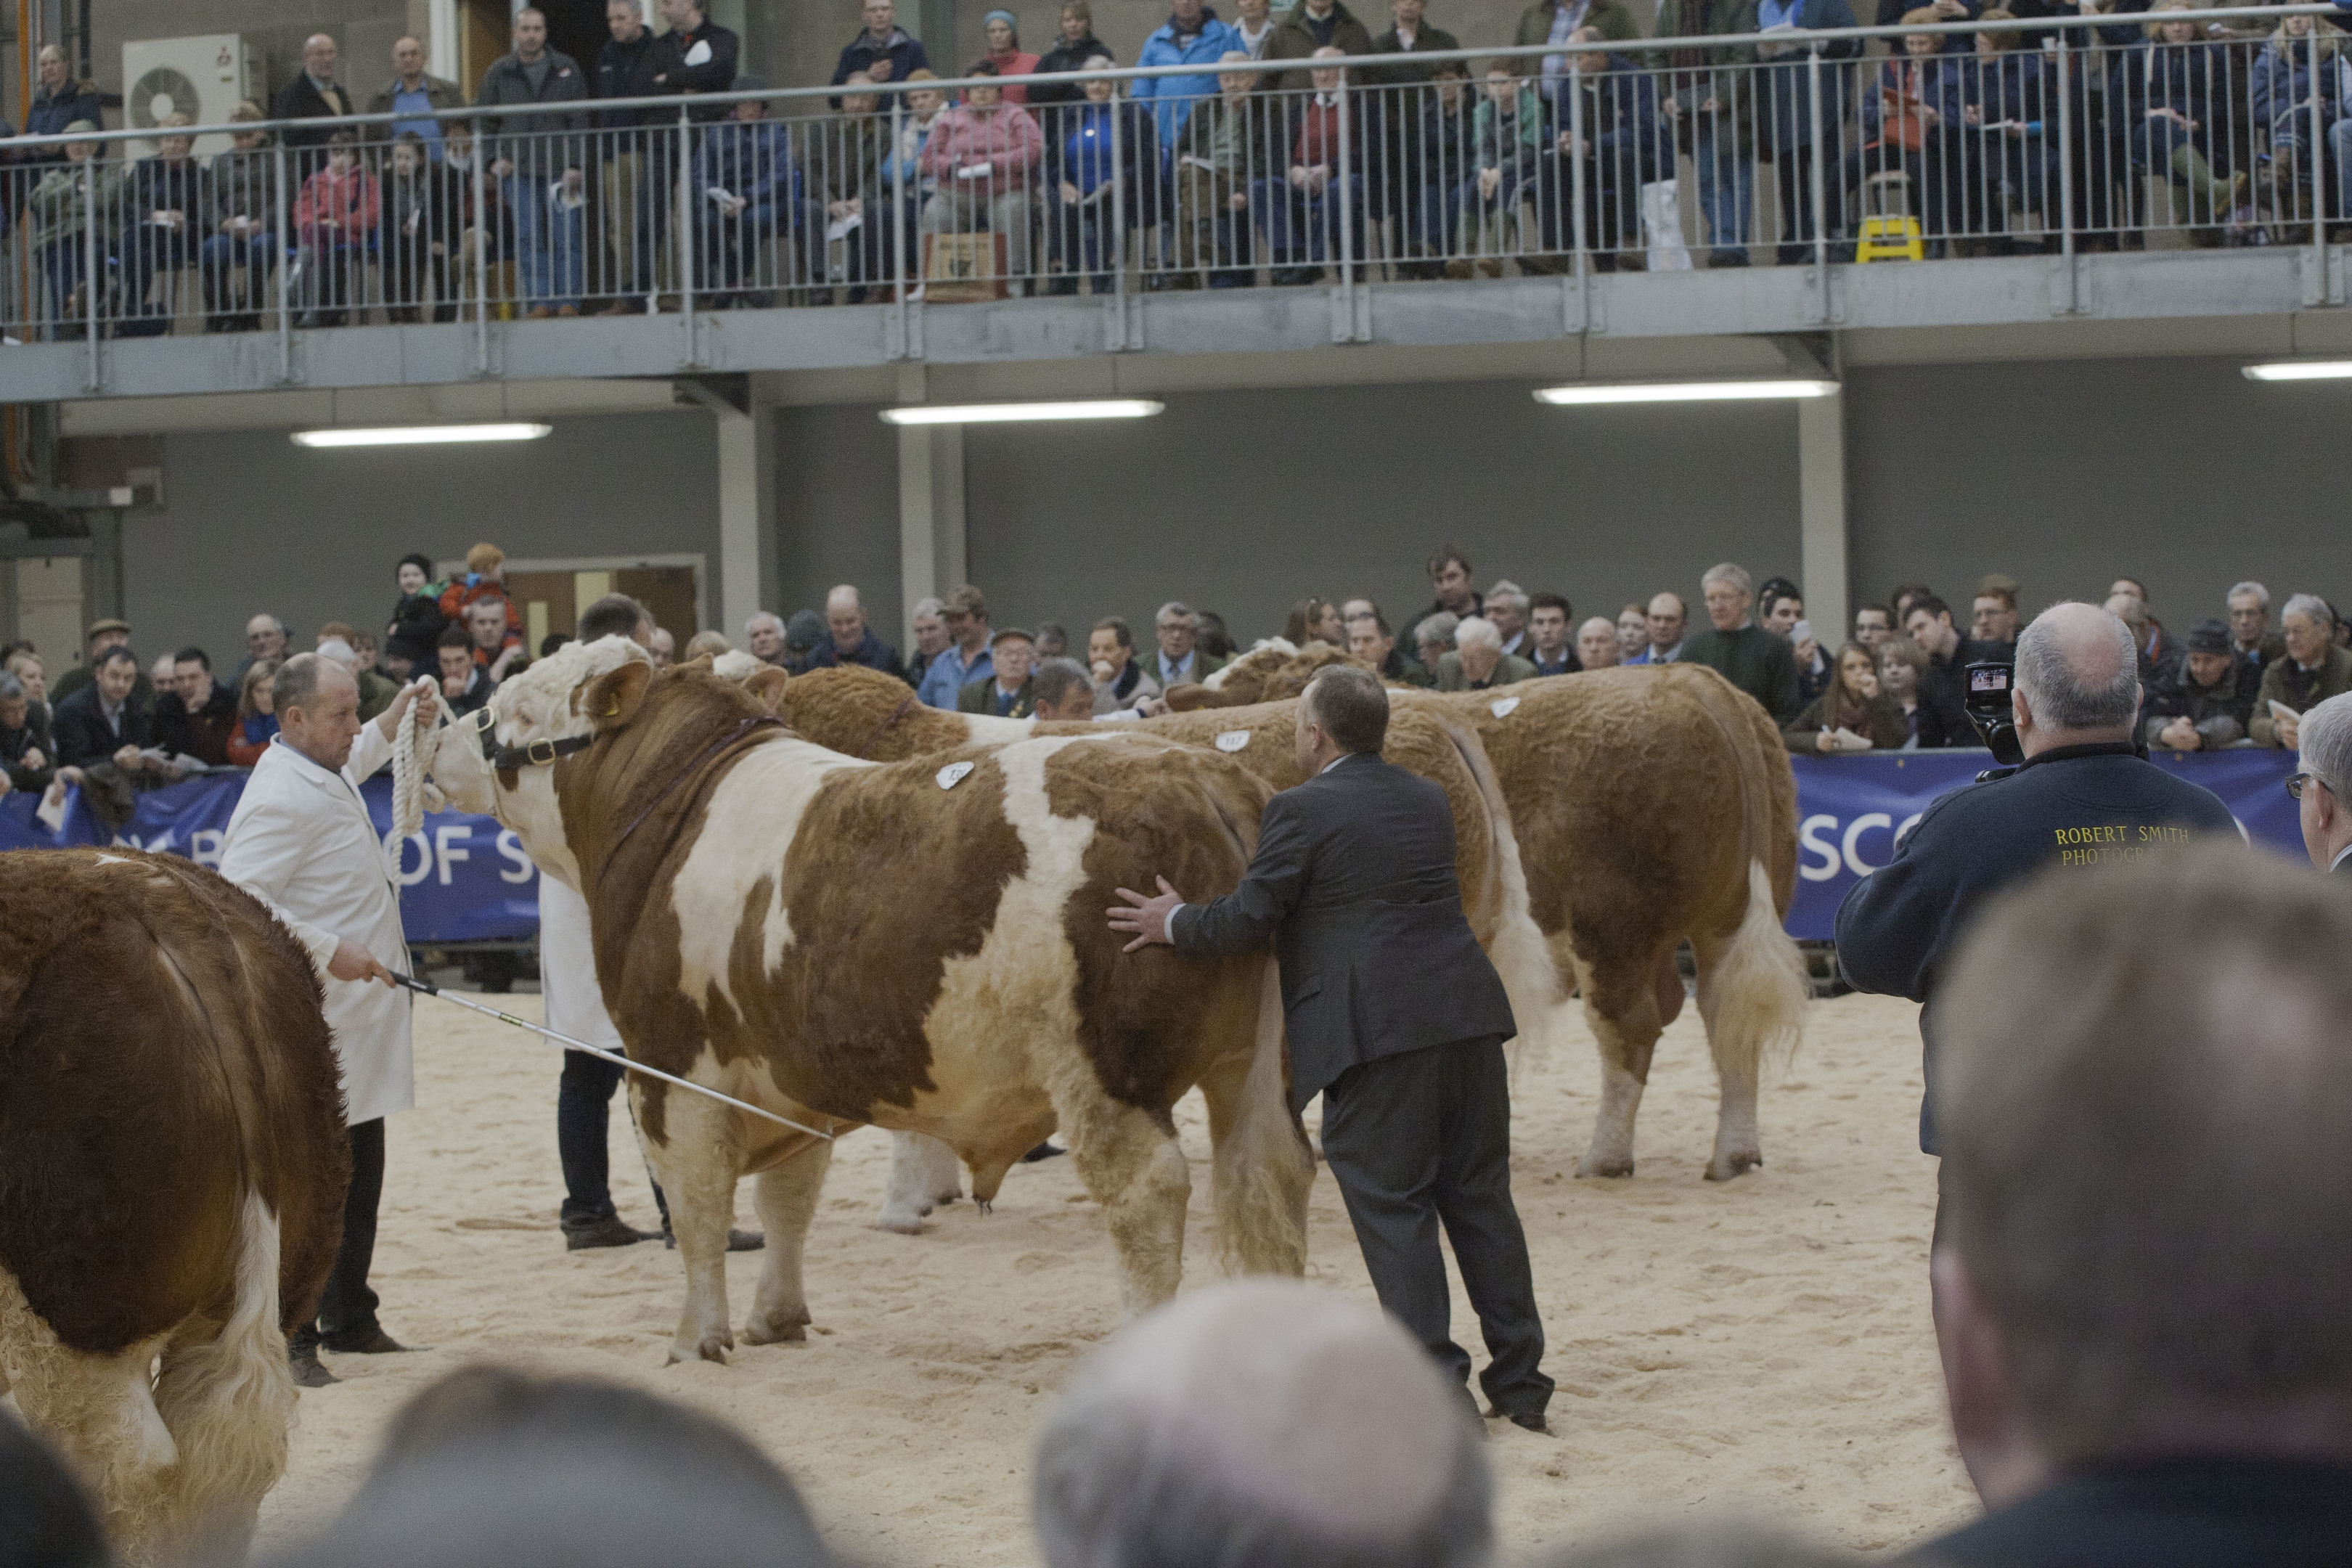 Bulls being judged at the Stirling Bull Sales